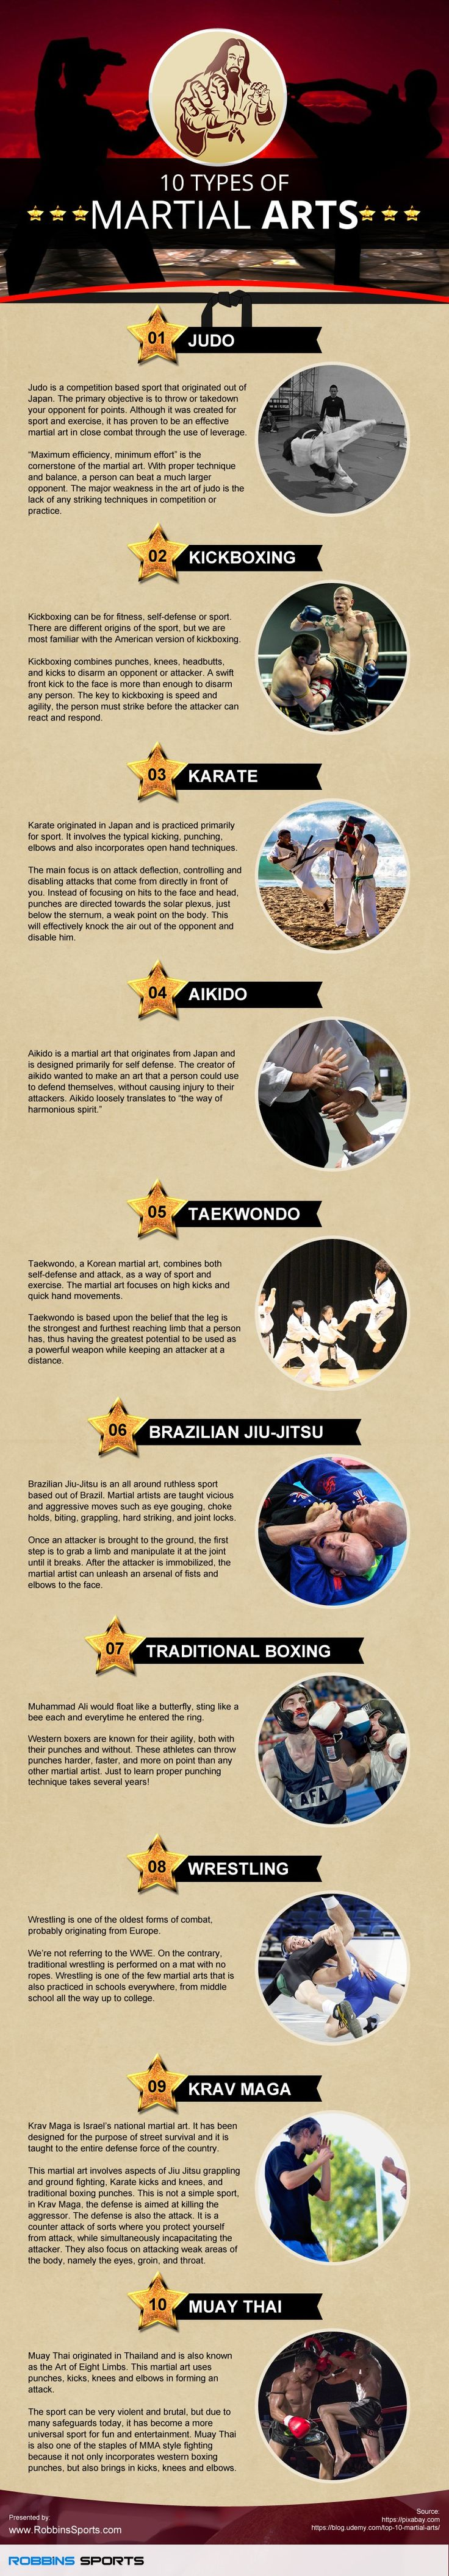 10 Types of Martial Arts #Infographic #Sports